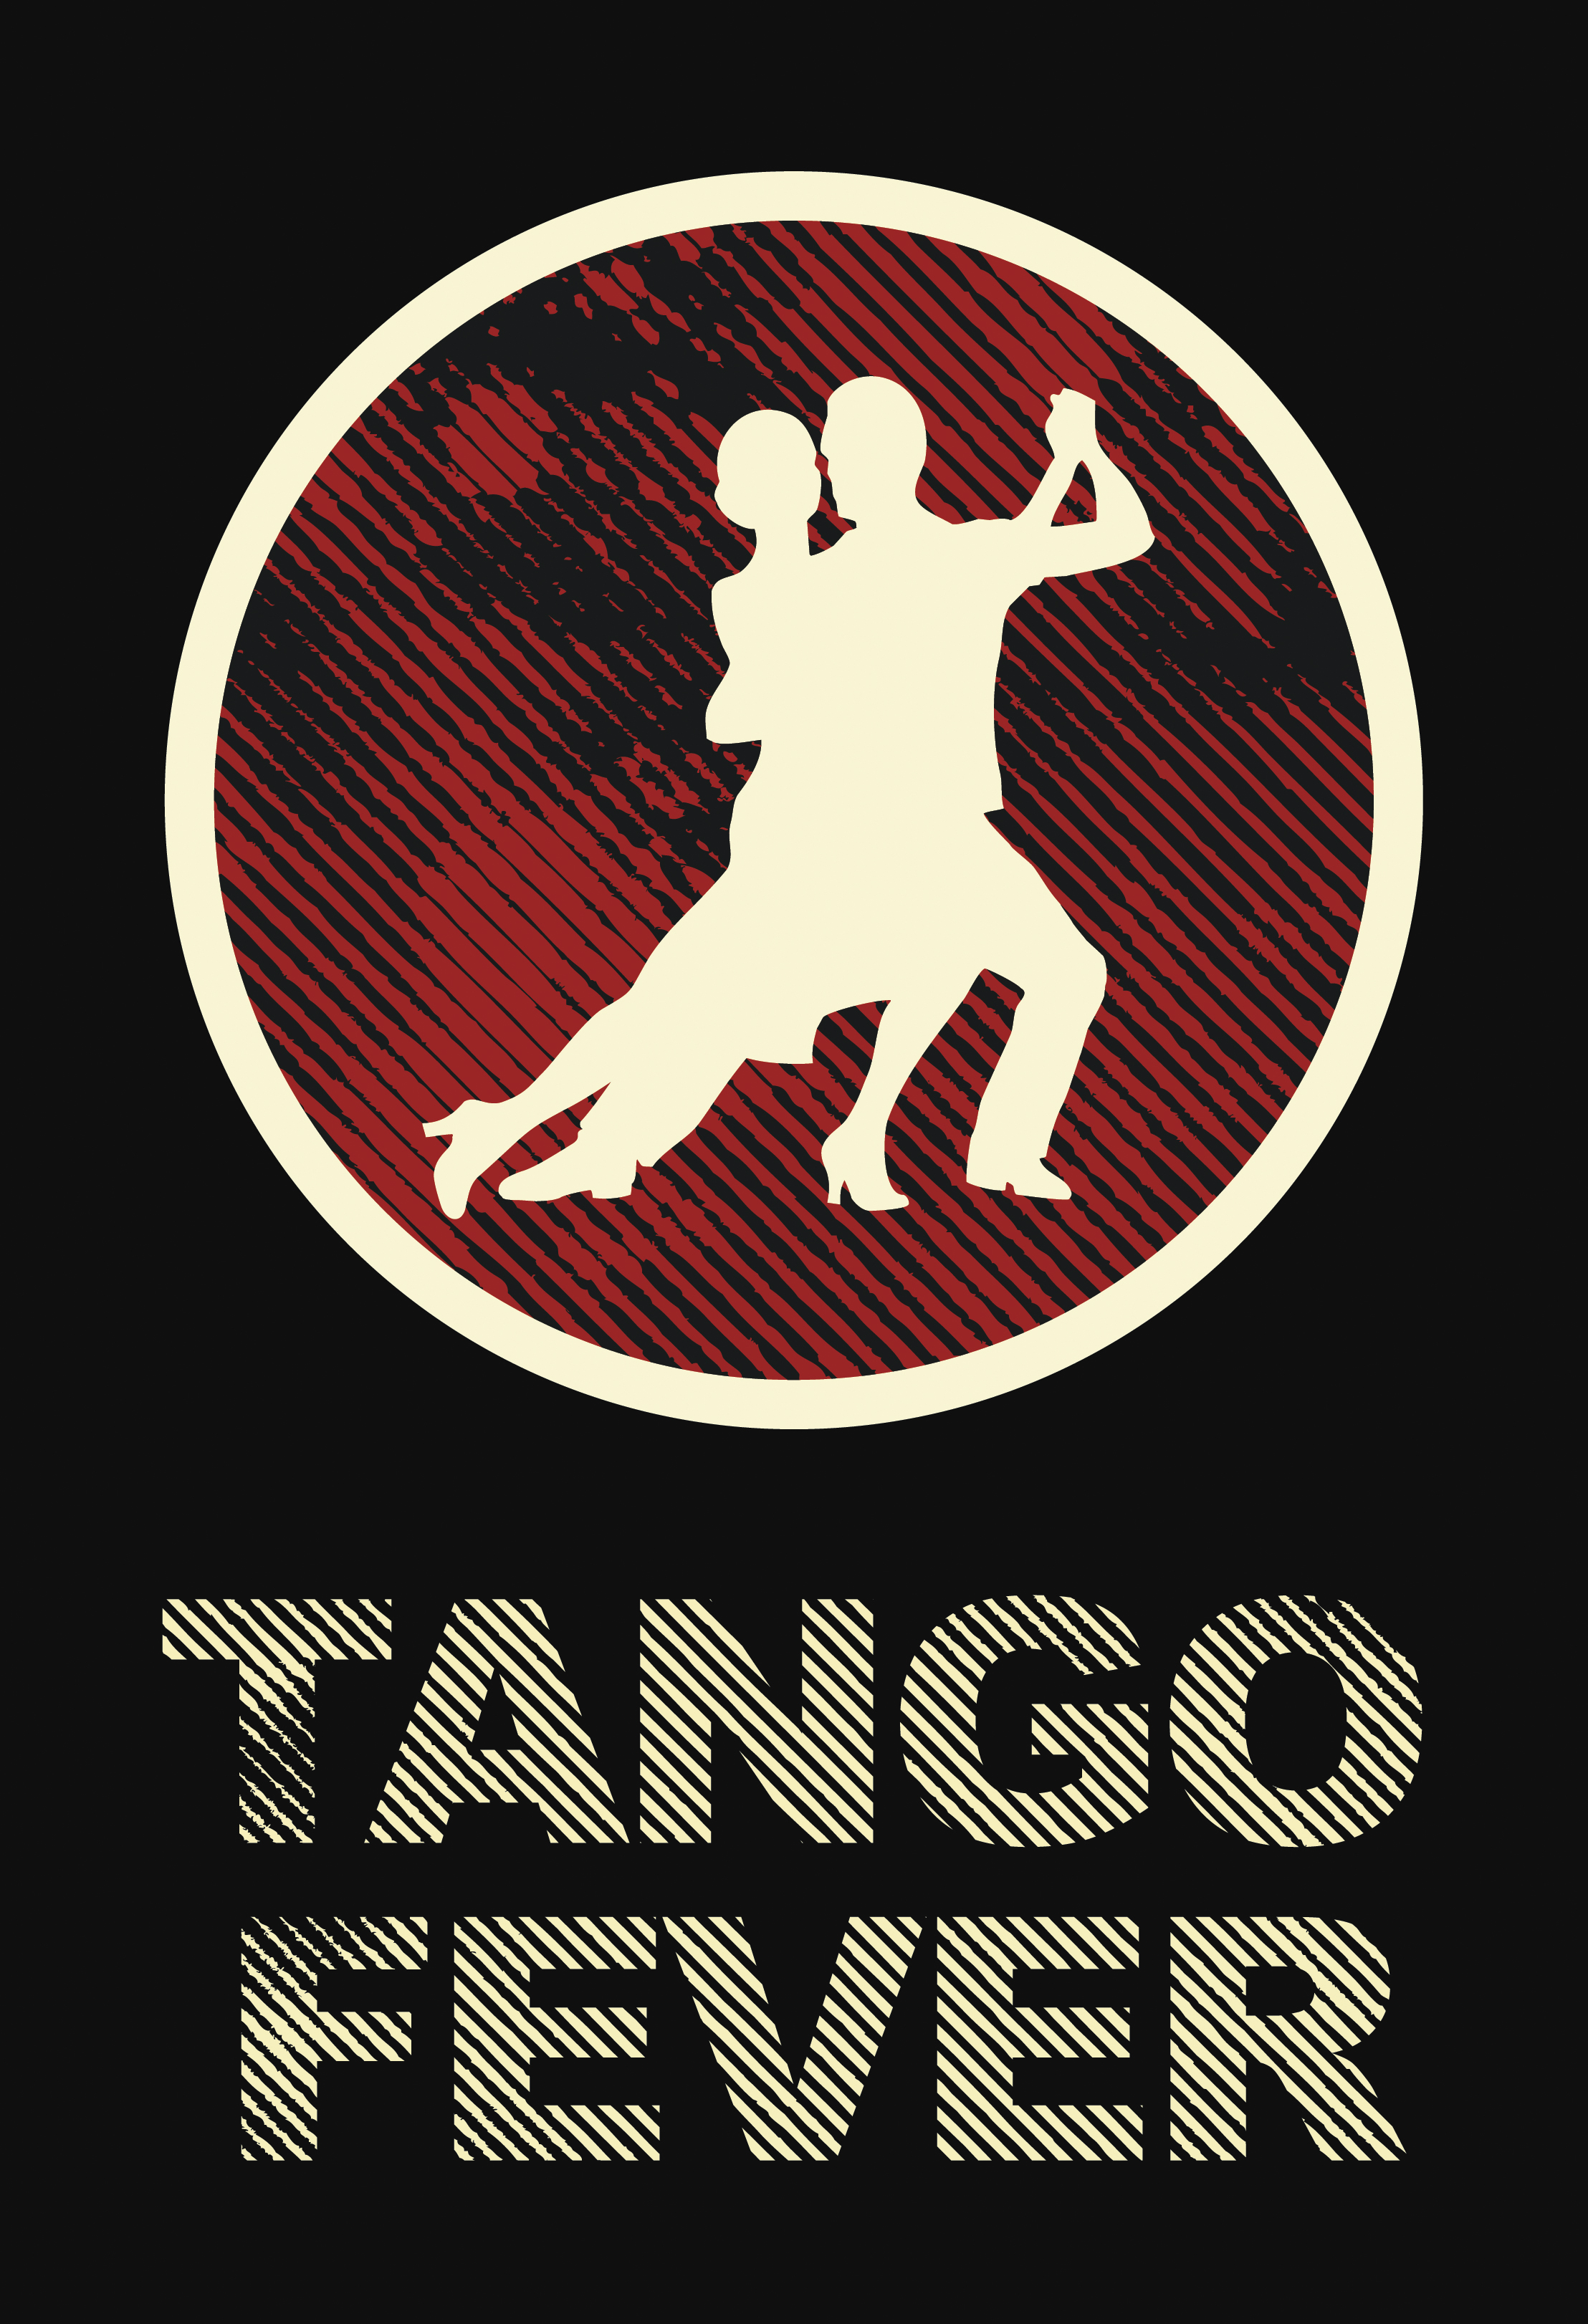 Tango Fever undefined classes in London